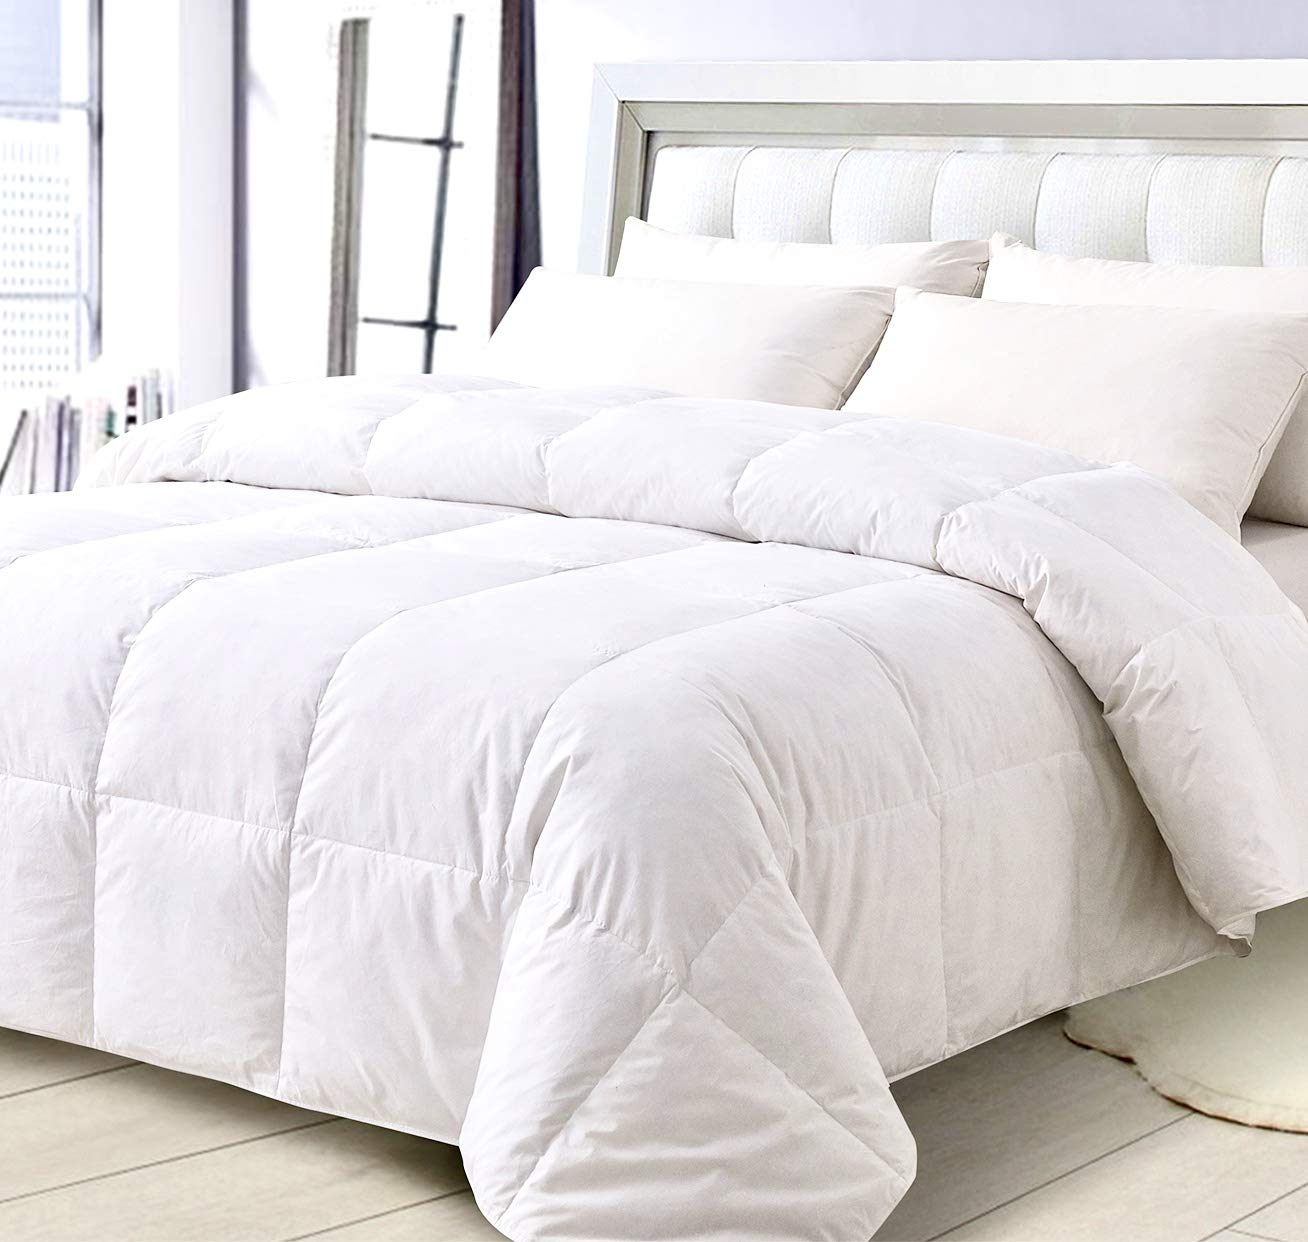 ELNIDO QUEEN White Goose Duck Down and Feather Comforter with 100% Cotton Cover-Lightweight Warmth All Season-Bedding Duvet Insert Stand Alone-Queen